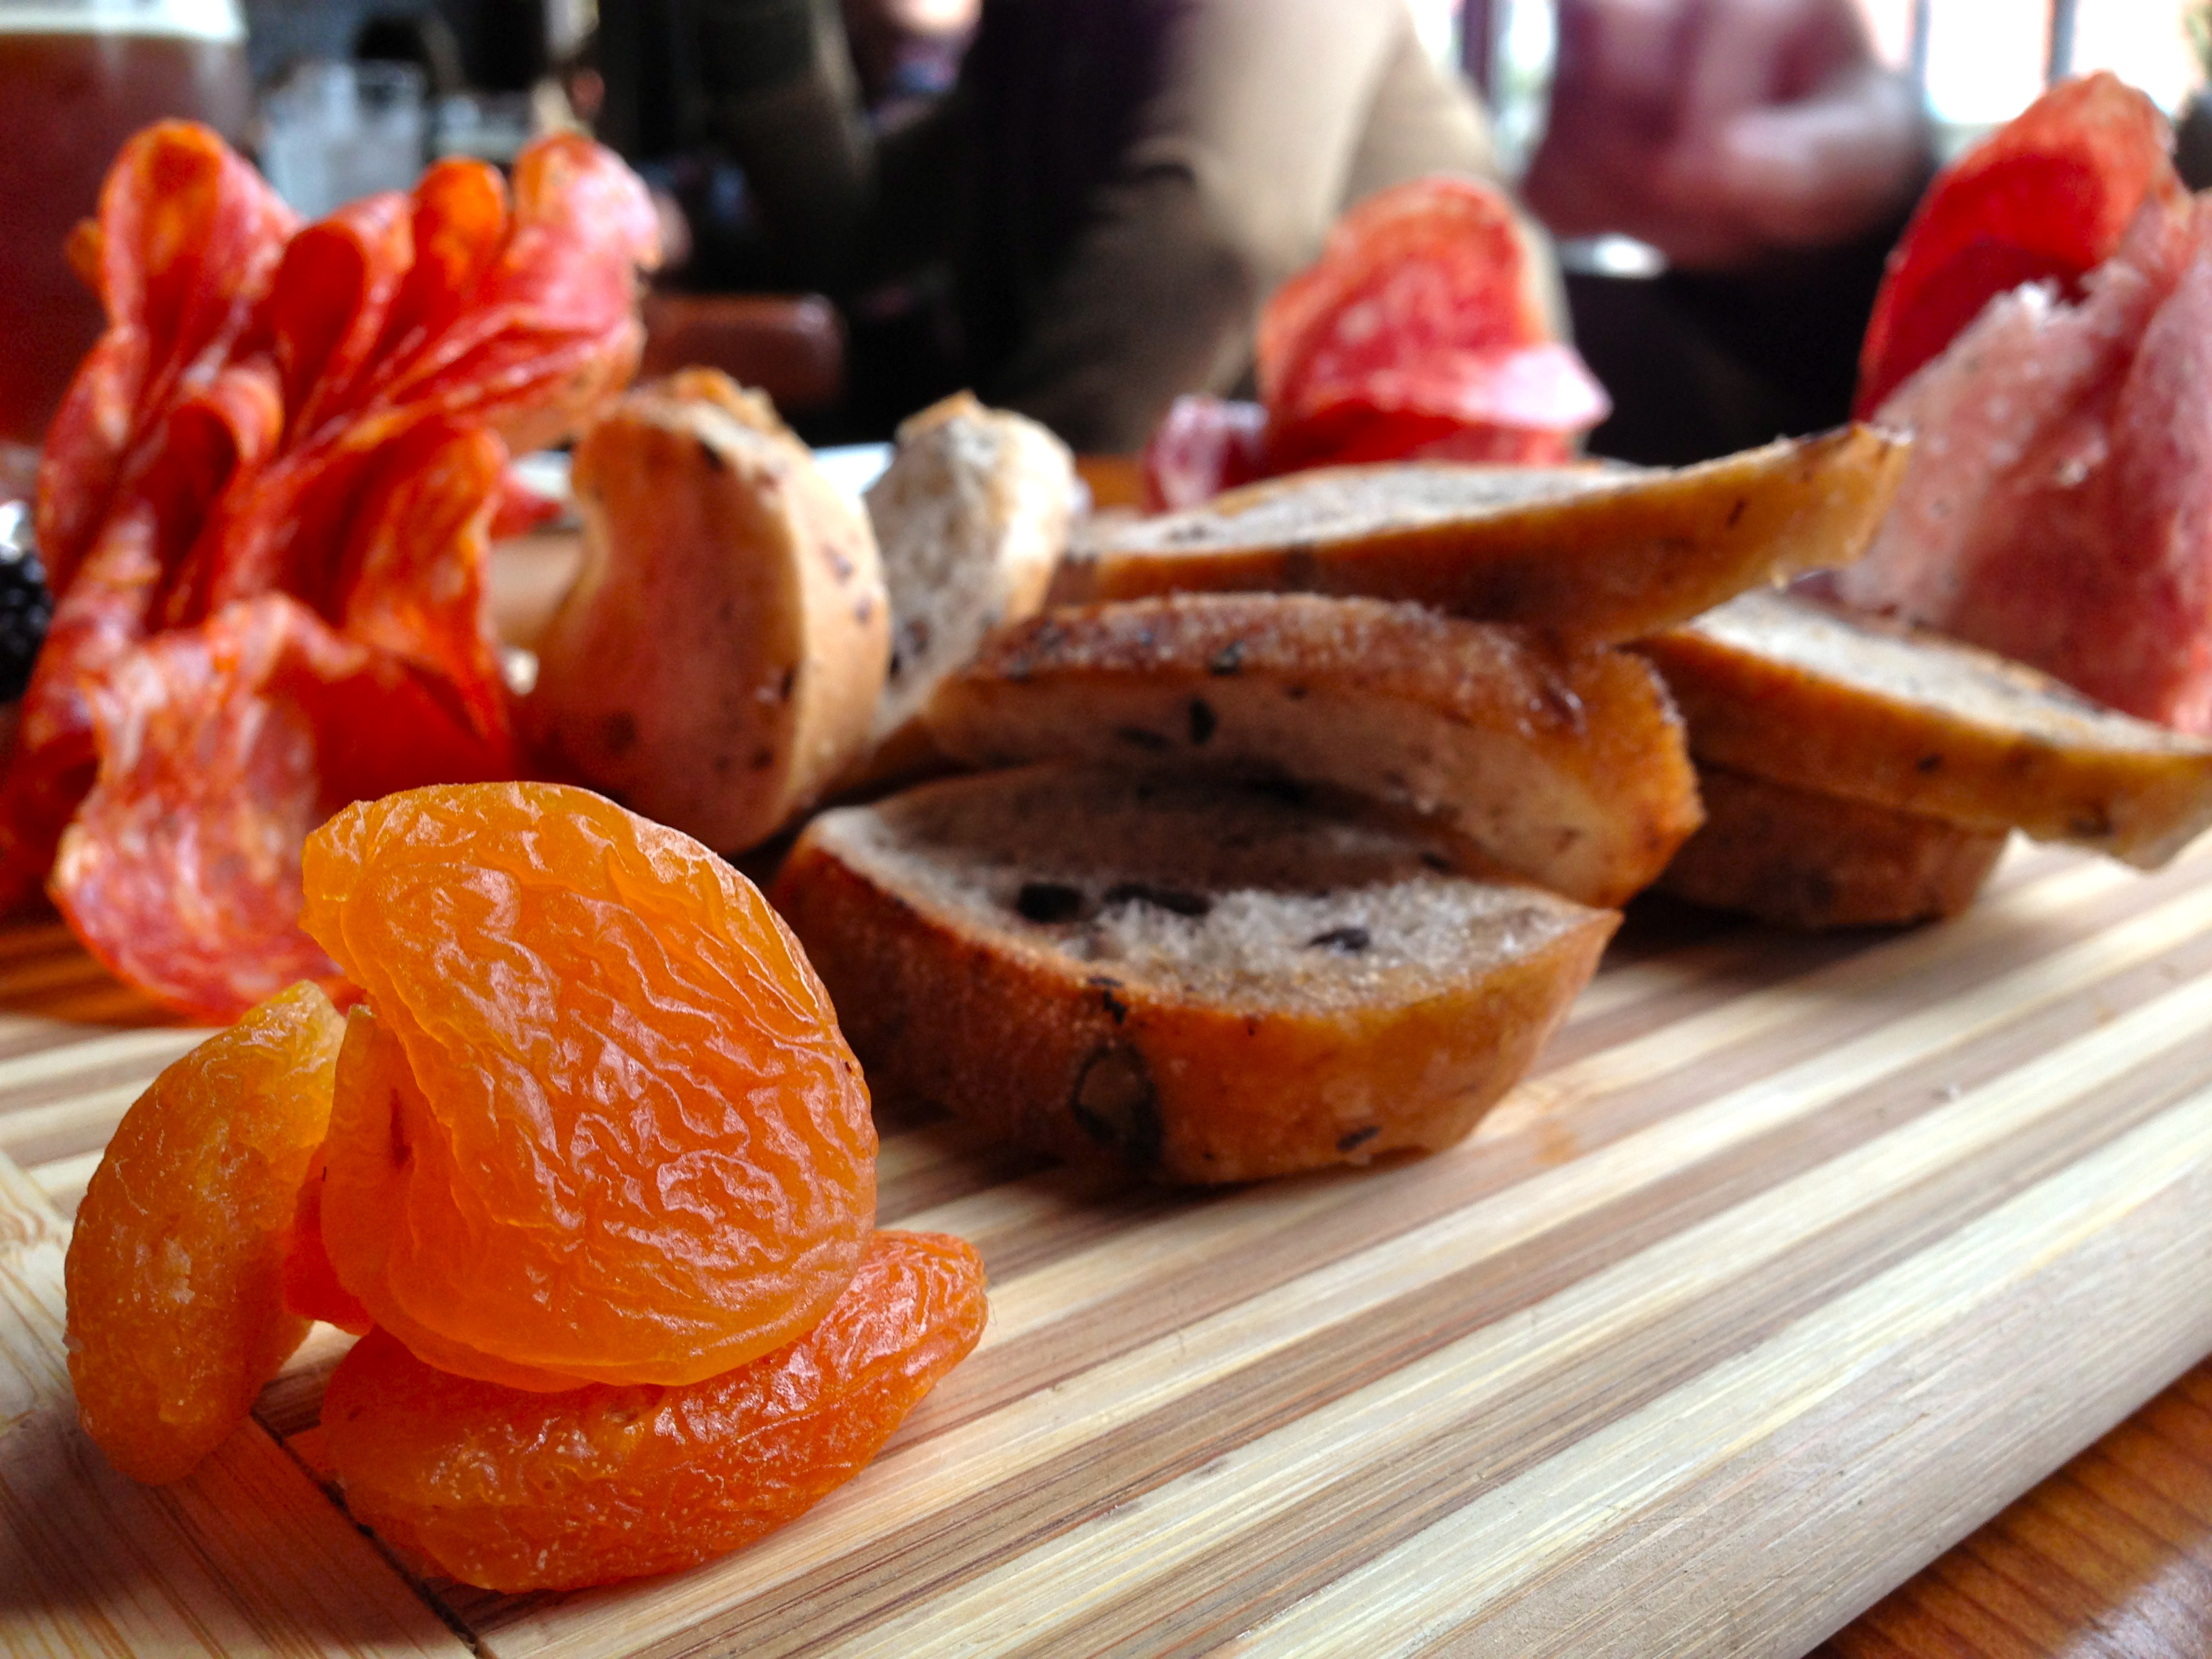 Salty, porky heaven: The Faculty's massive and pretty charcuterie platter, $15